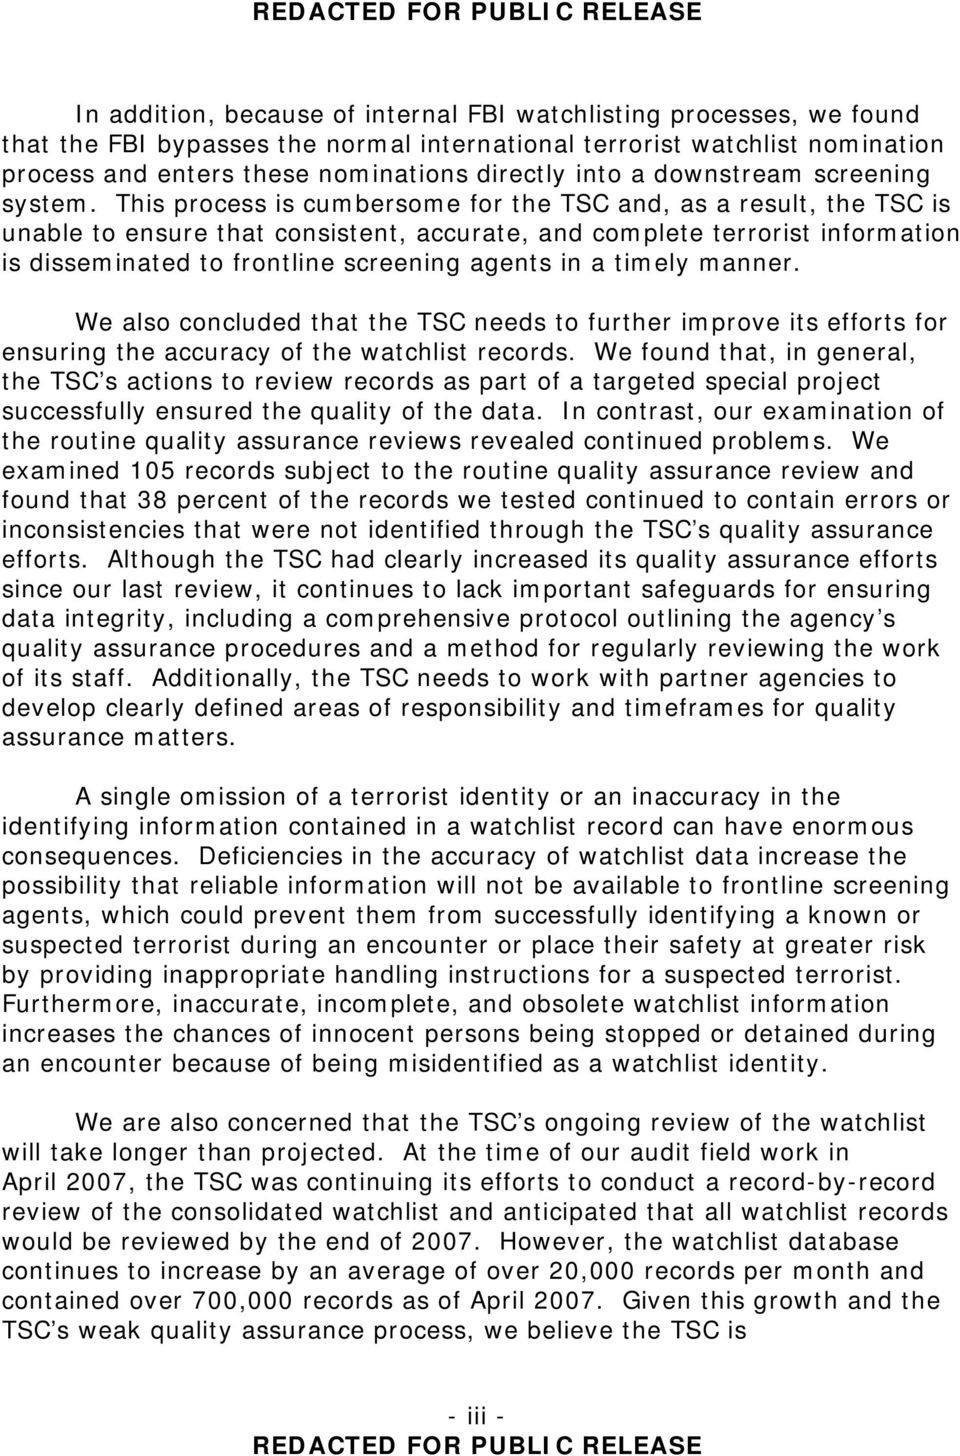 This process is cumbersome for the TSC and, as a result, the TSC is unable to ensure that consistent, accurate, and complete terrorist information is disseminated to frontline screening agents in a